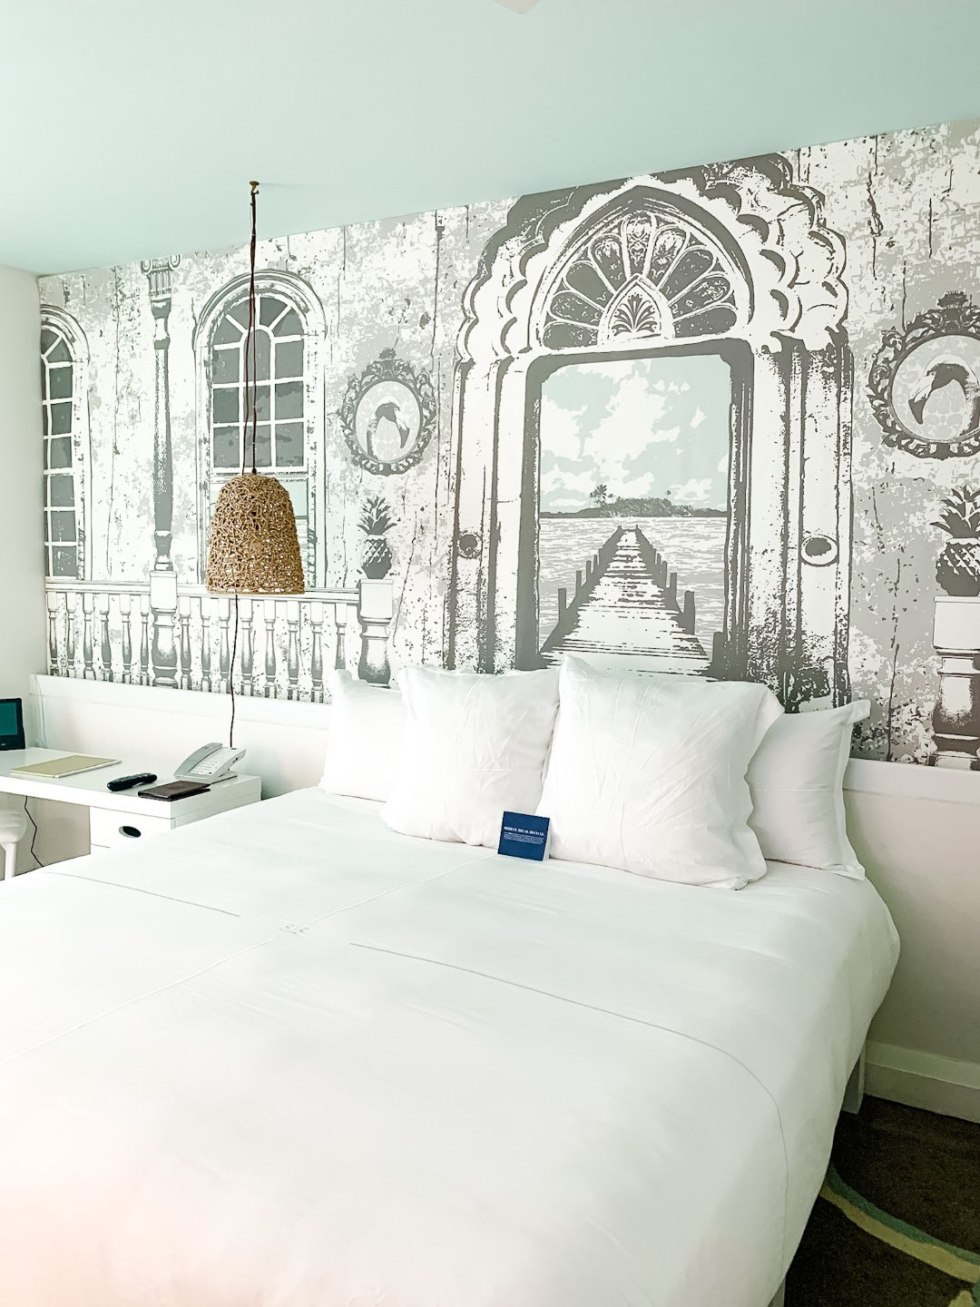 Warming Up in the Bahamas: the Best Things to Do at Baha Mar - I'm Fixin' To - @mbg0112 | Warming Up in the Bahamas: the Best Things to Do in Baha Mar by popular North Carolina travel blog, I'm Fixin' To: image of a bedroom at Baha Mar.